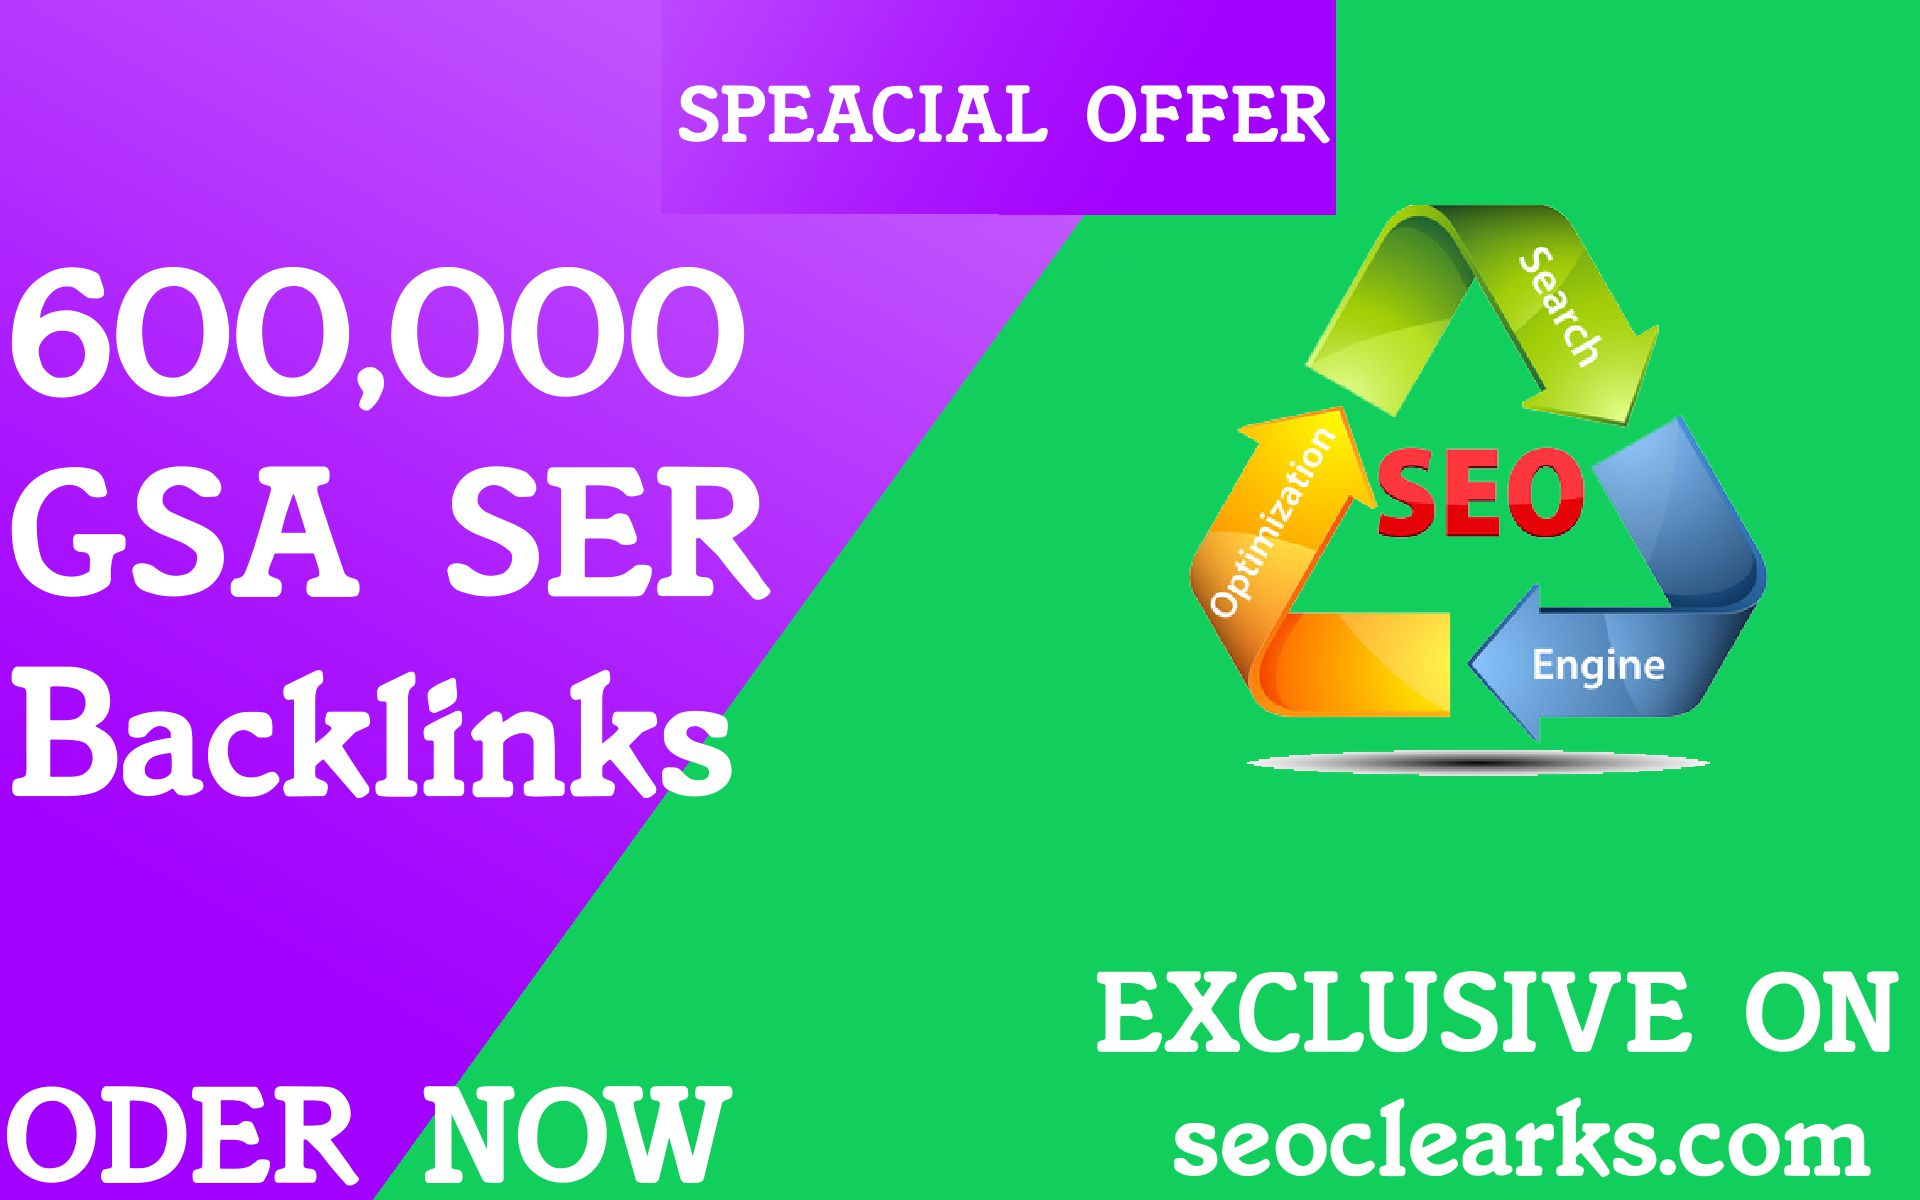 600,000 GSA SER Verified Backlinks for SEO Ranking